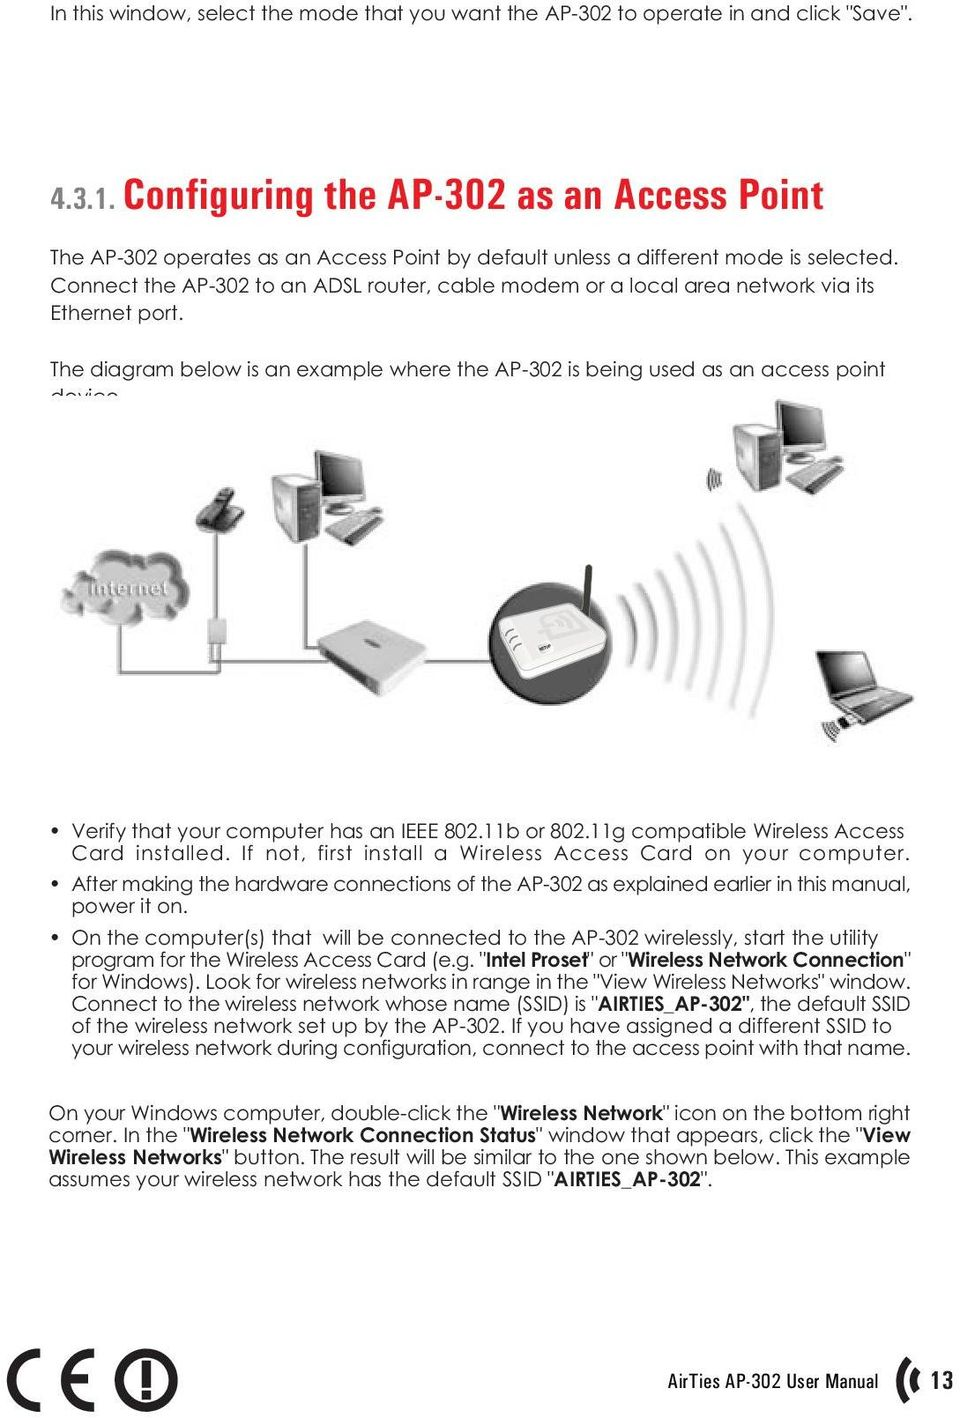 This Manual Has Been Prepared By Airties Wireless Networks Diagram Besides Router Hook Up As Well Poe Ether Connect The Ap 302 To An Adsl Cable Modem Or A Local Area